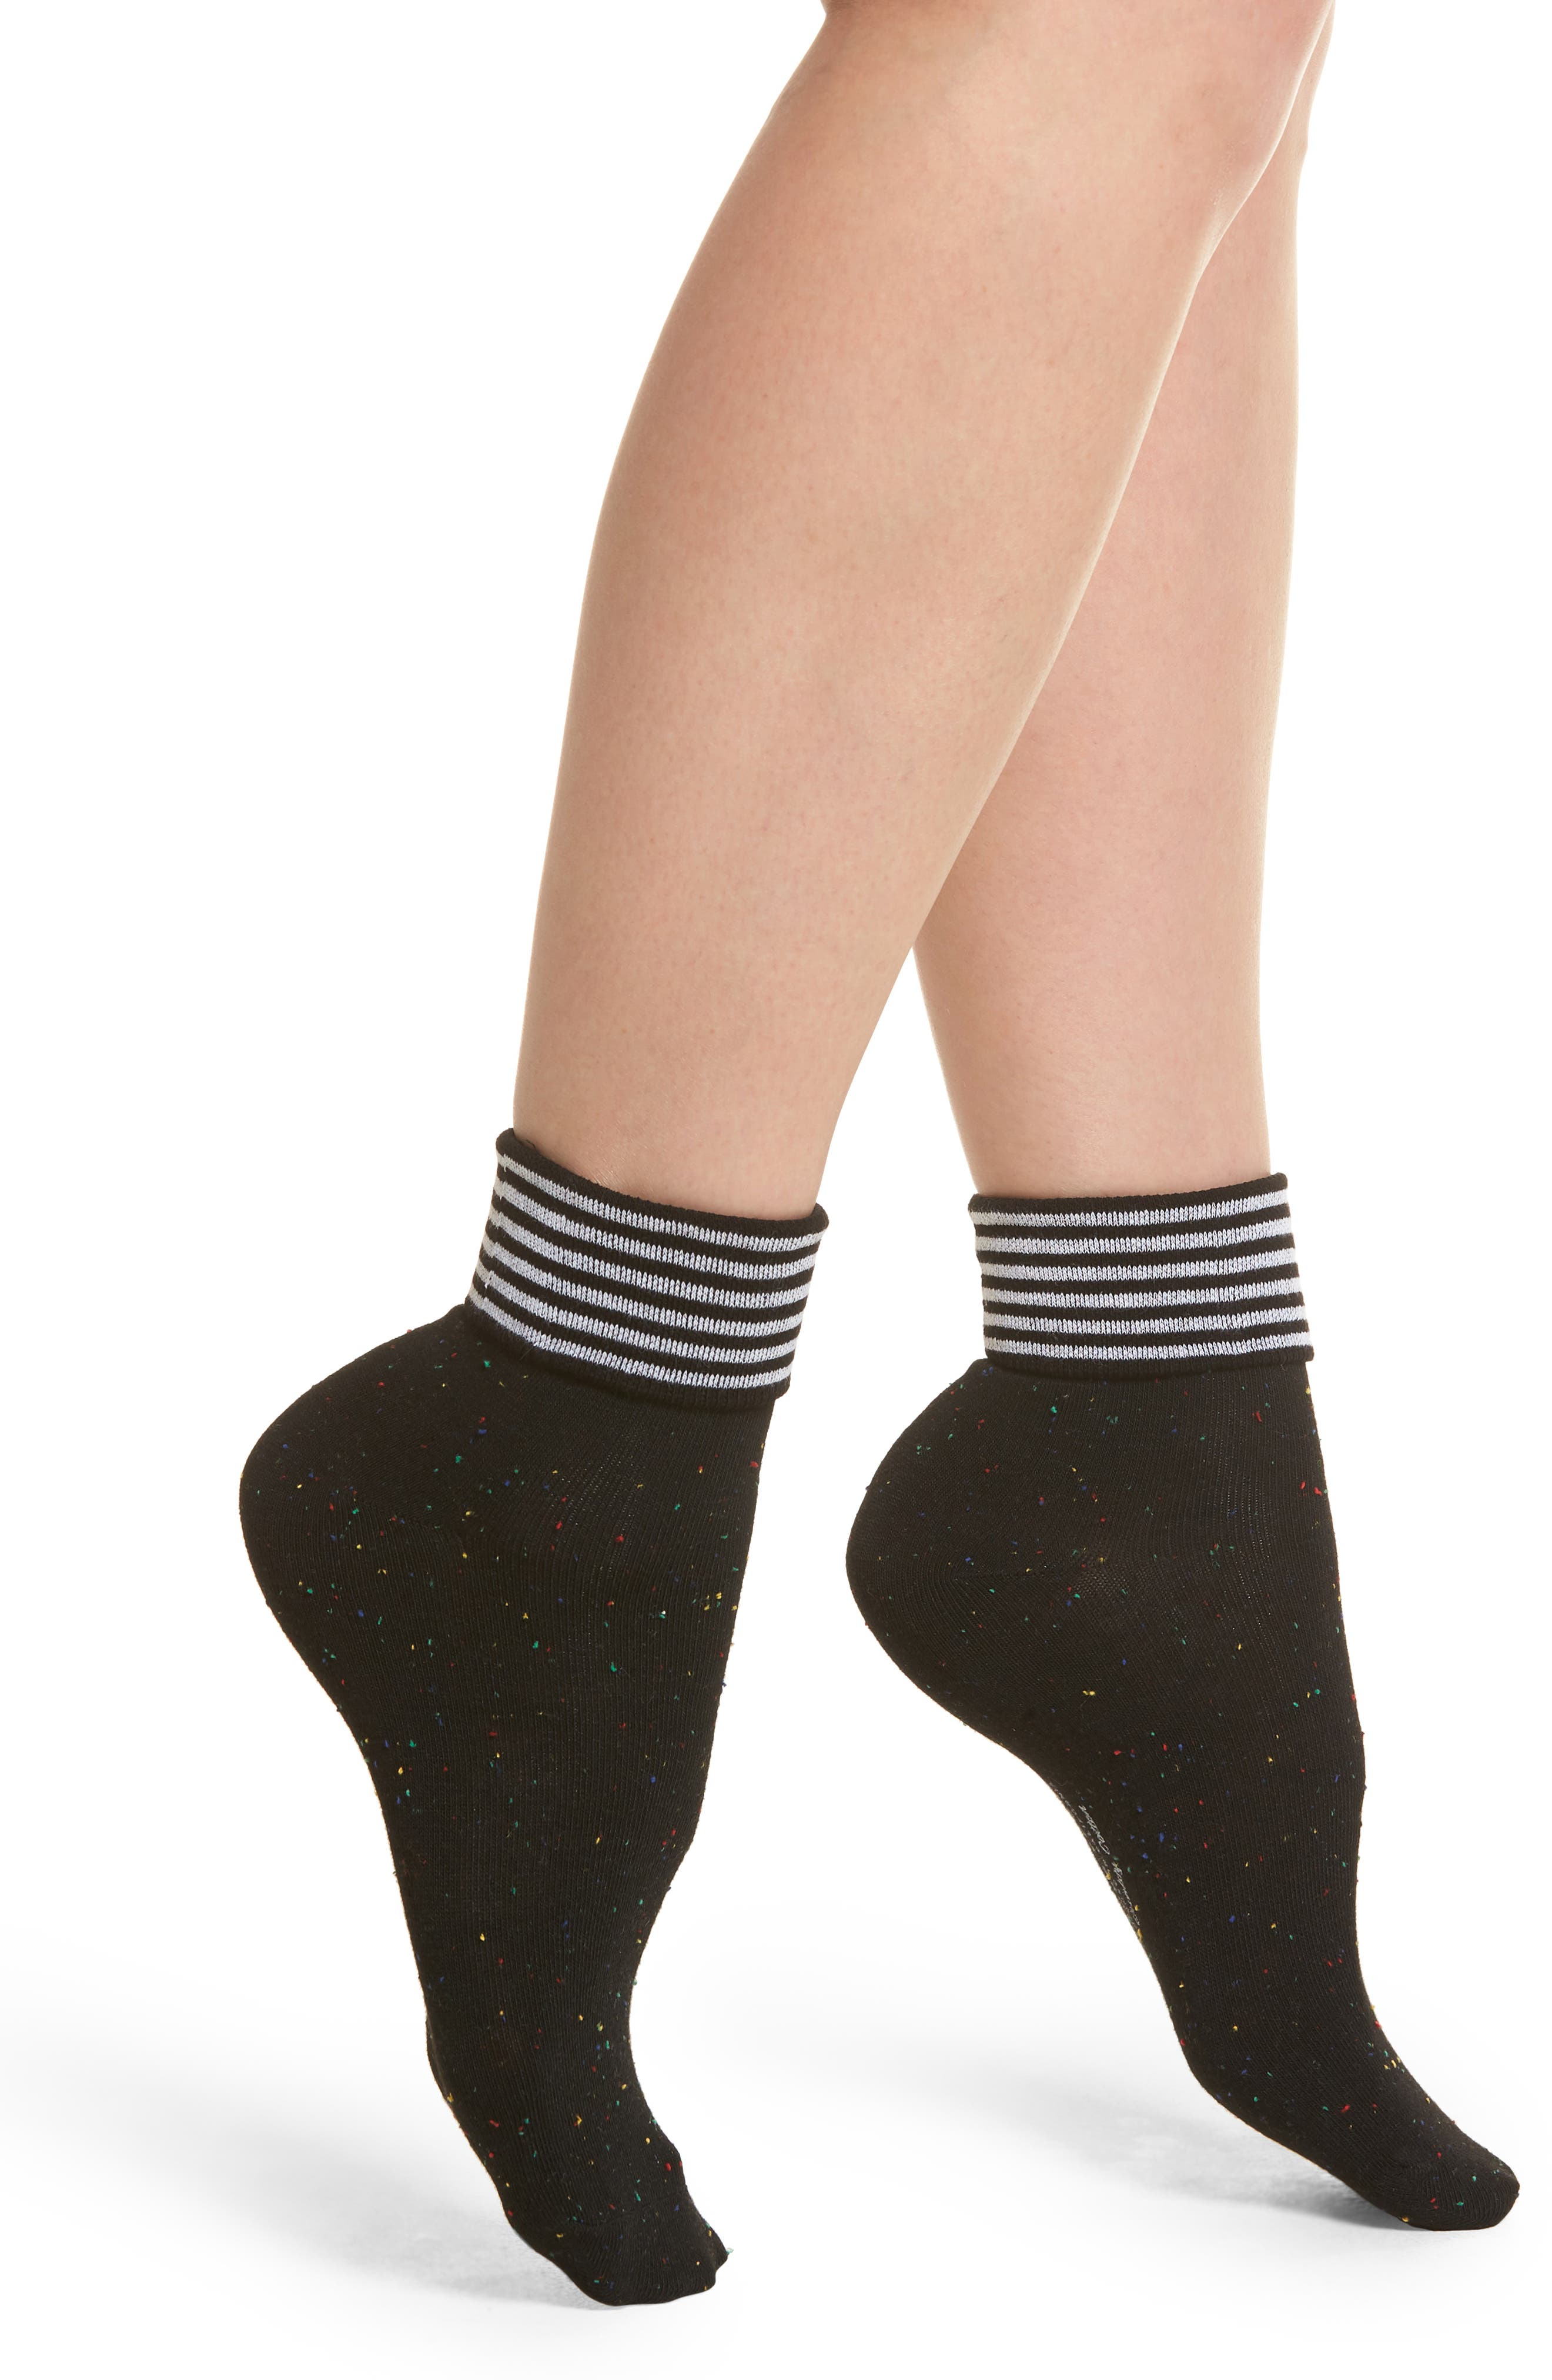 Tina Foldover Ankle Socks,                             Main thumbnail 1, color,                             001